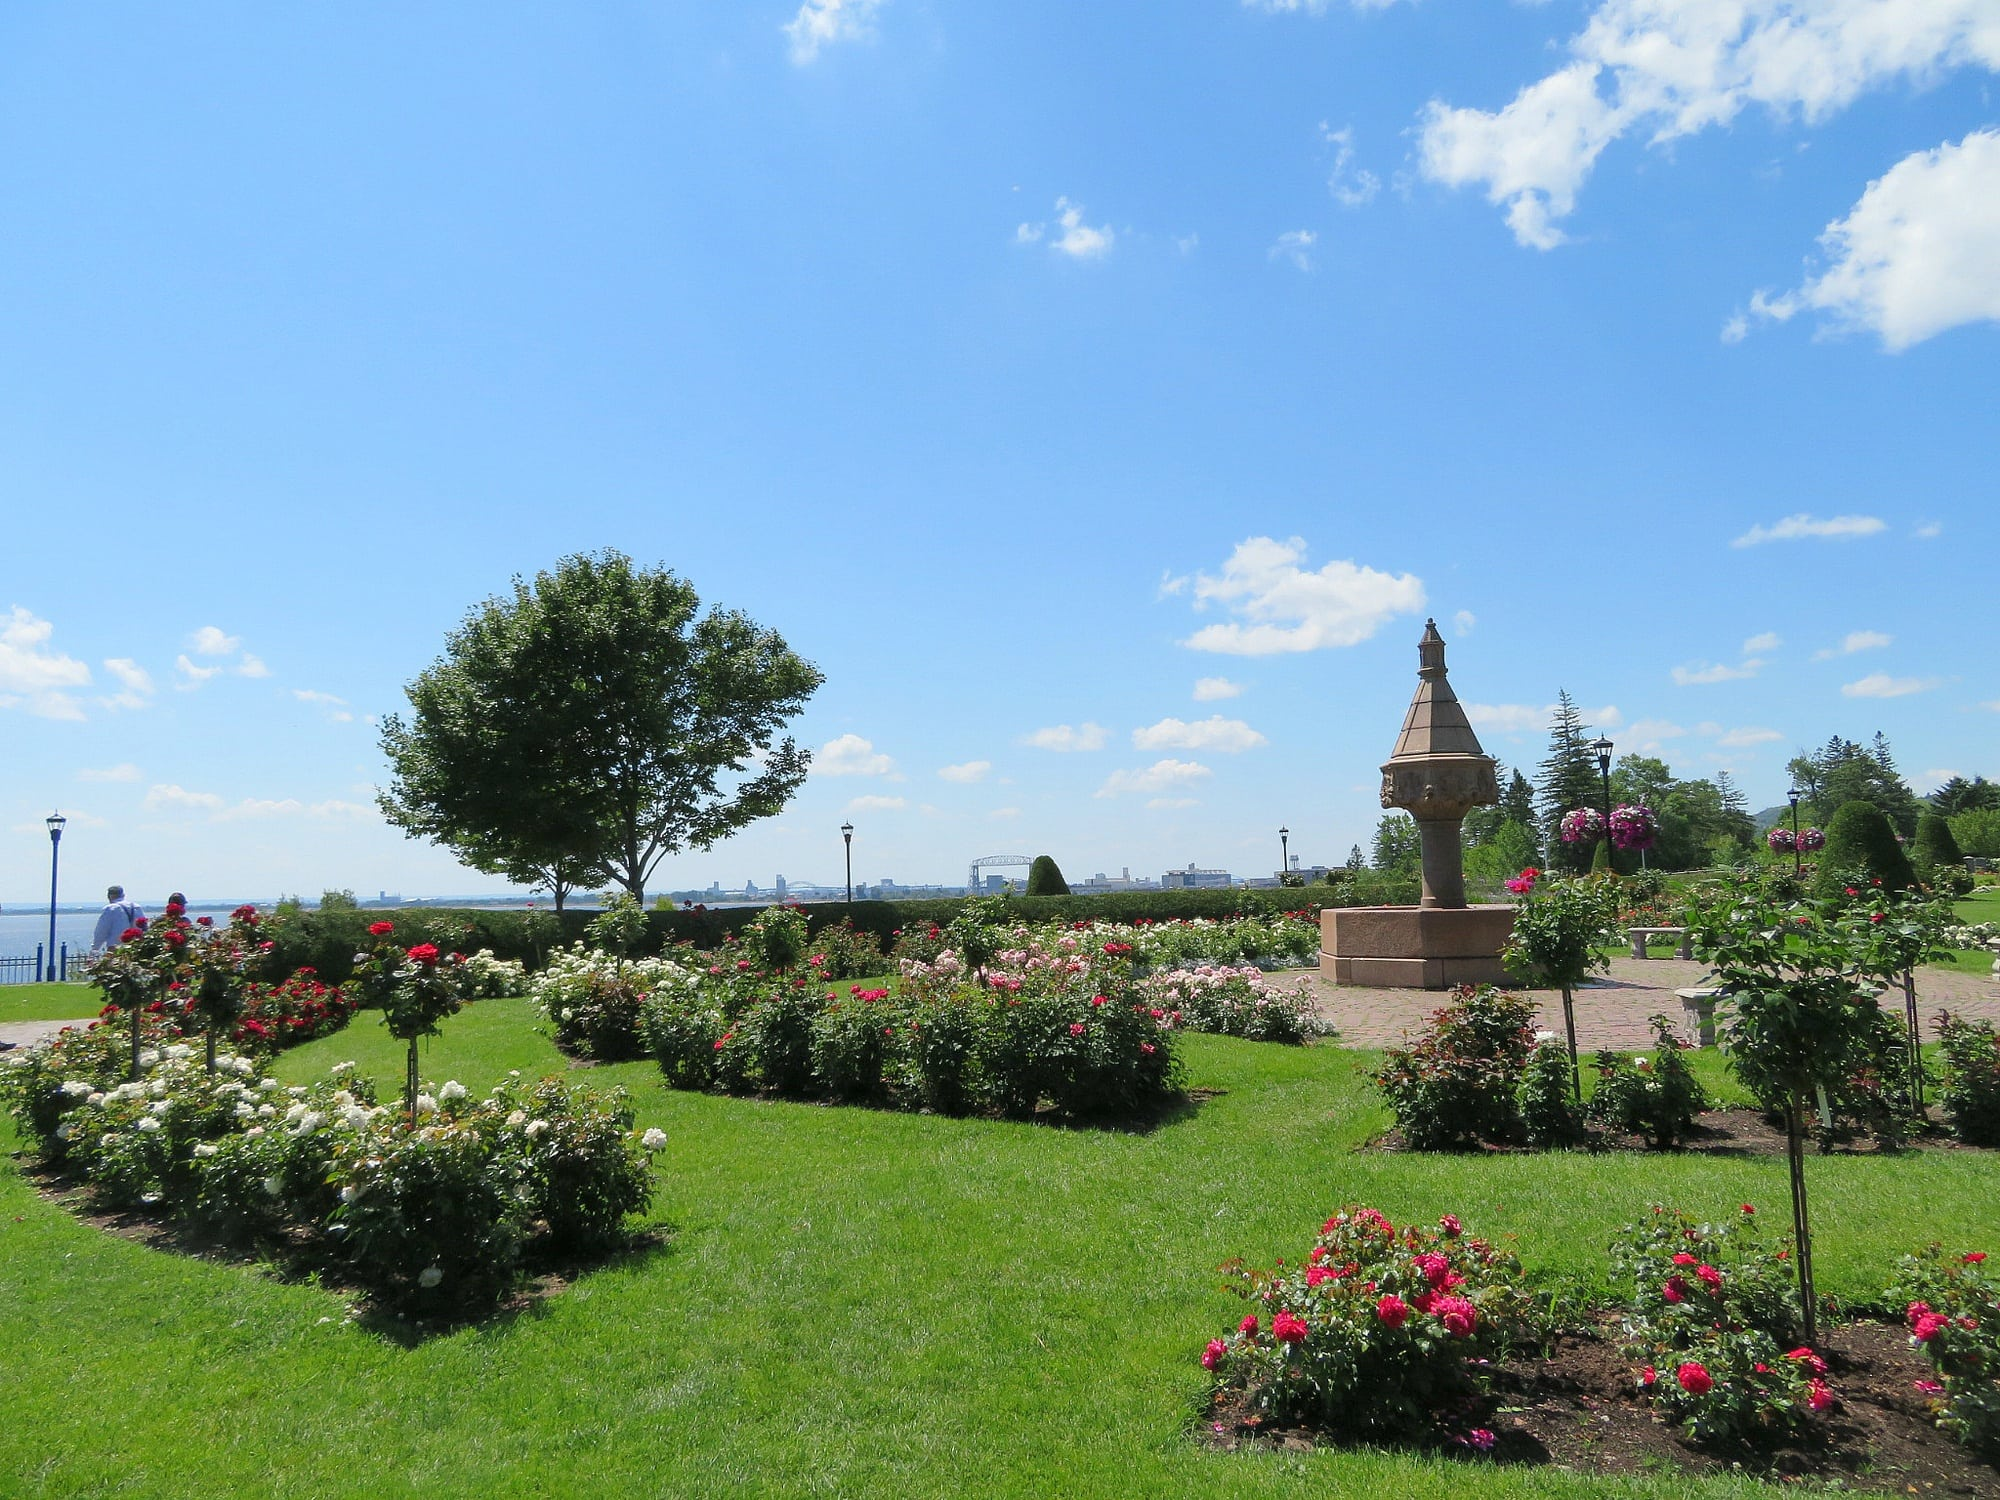 Duluth's Rose Garden boasts over 3,000 rose bushes